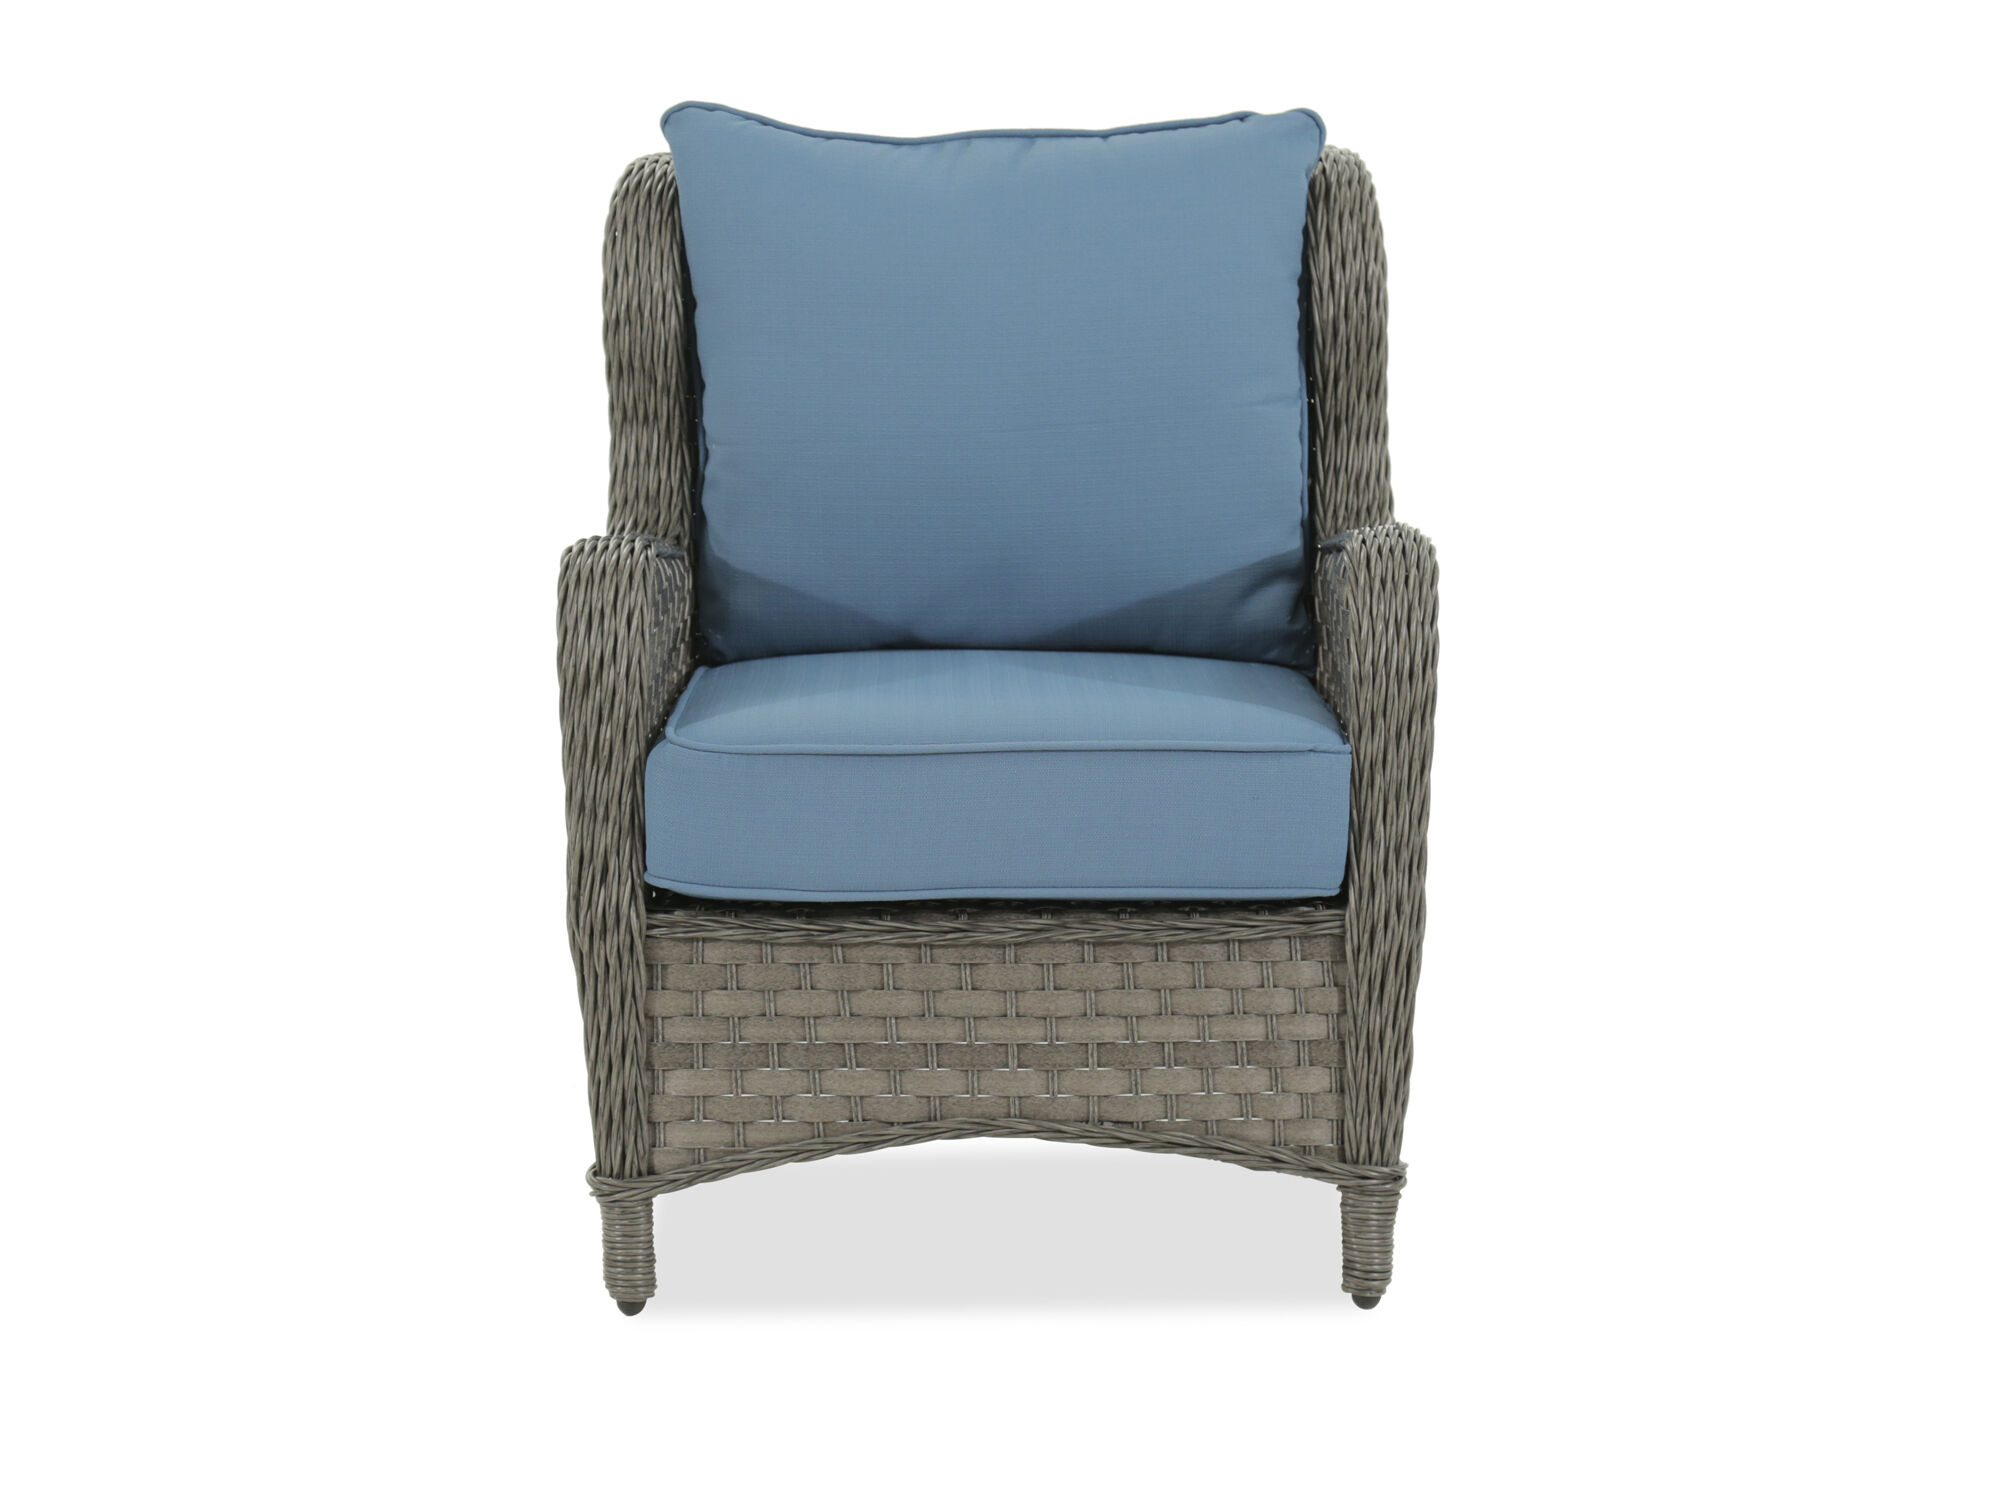 woven lounge chair pads for wood floors aluminum in blue mathis